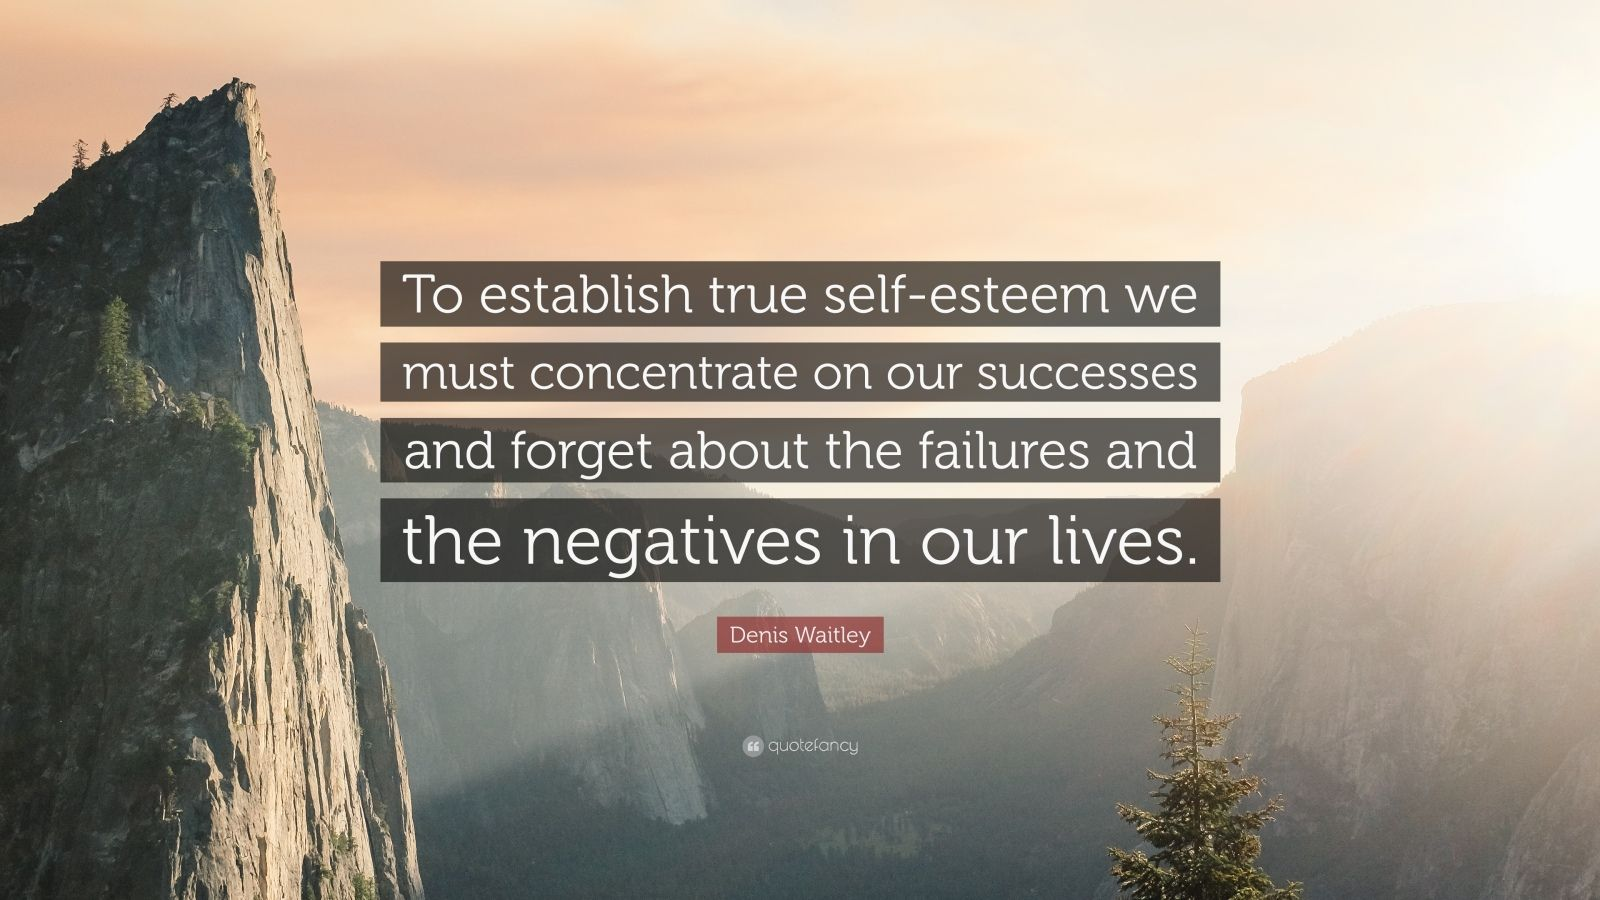 """Denis Waitley Quote: """"To establish true self-esteem we must concentrate on our successes and forget about the failures and the negatives in our lives."""""""